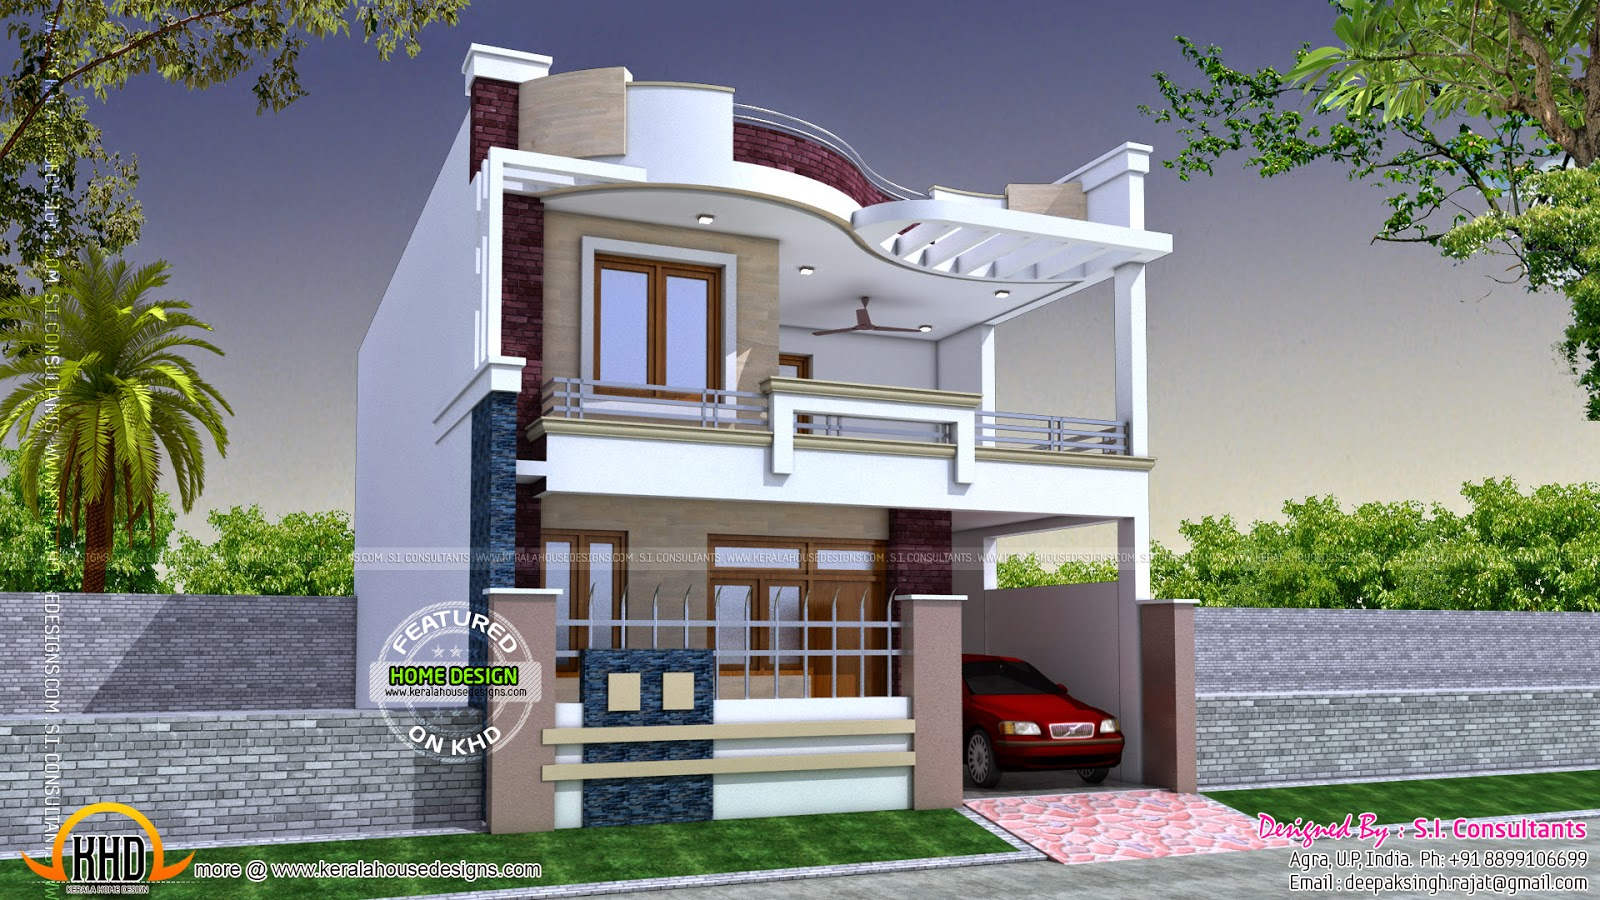 Small house architecture design in india minimalist home for Architecture design of house in india